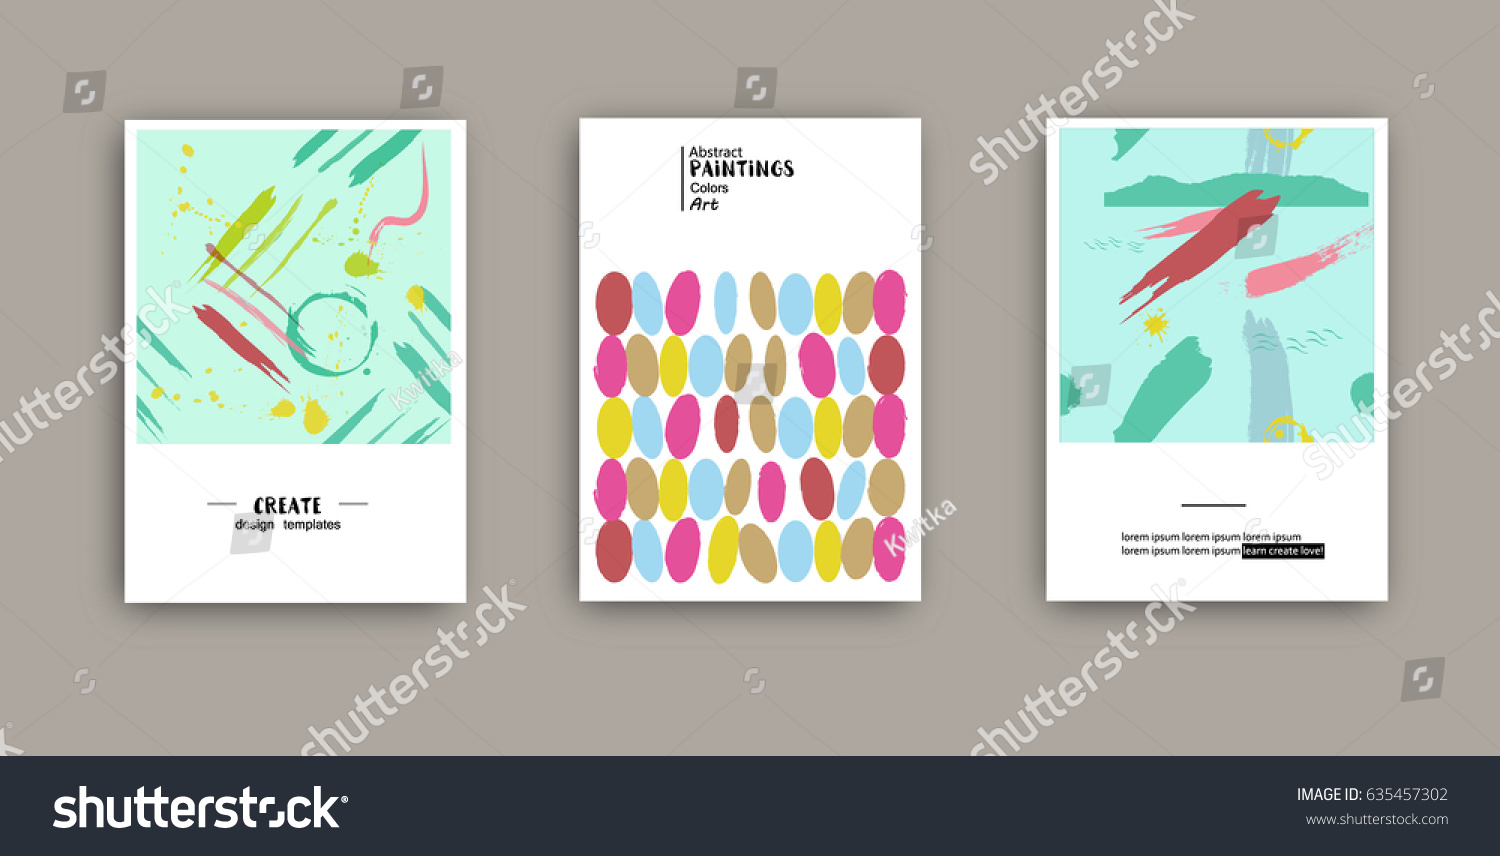 Covers Hand Drawn Texture Templates Design Stock Vector 635457302 ...